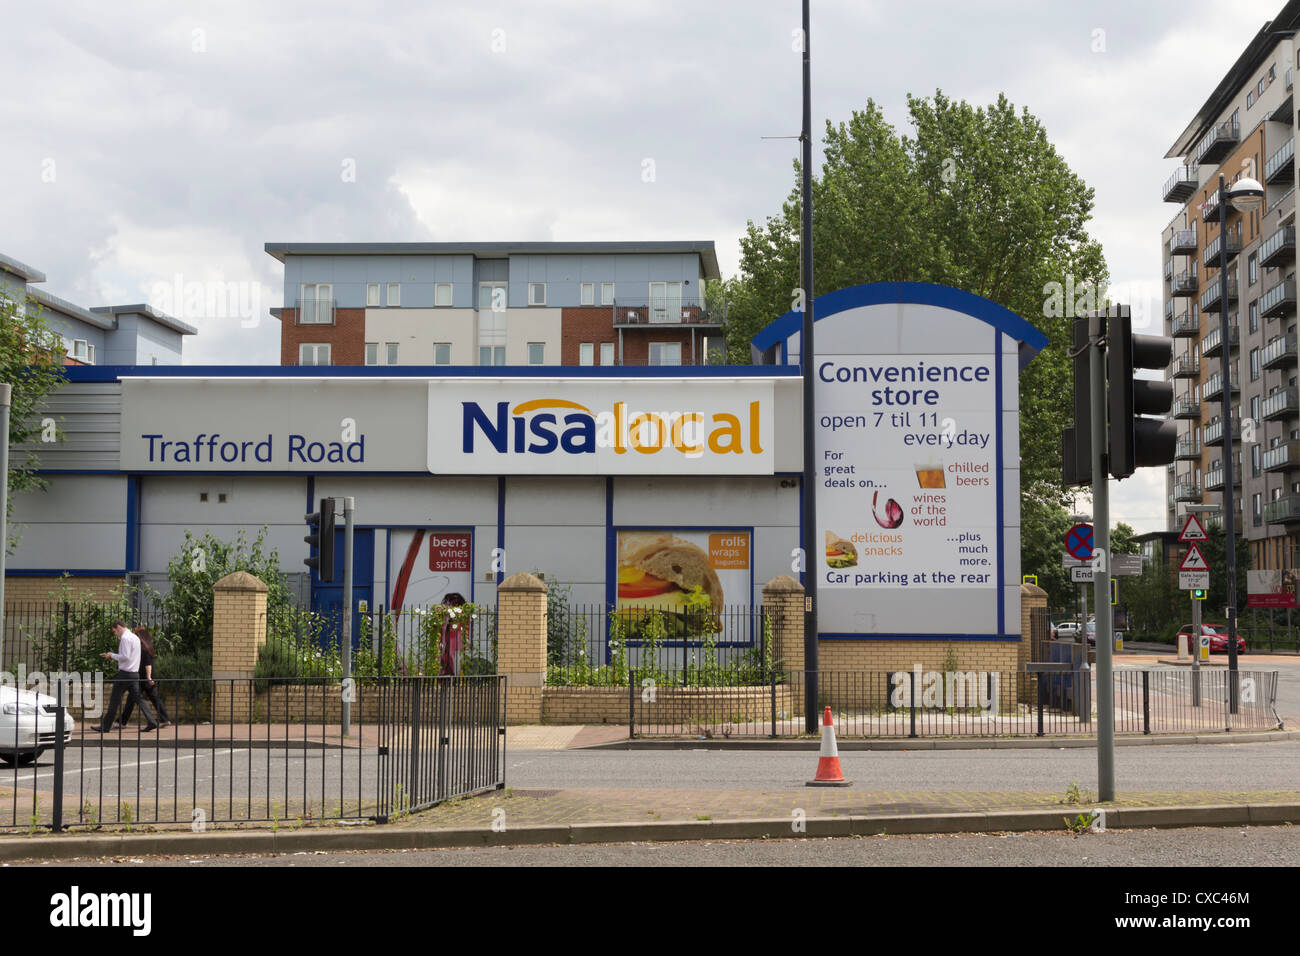 NisaLocal convenience store on Trafford Road Salford. Nisa stores are independently owned but operate as a consortium. Stock Photo